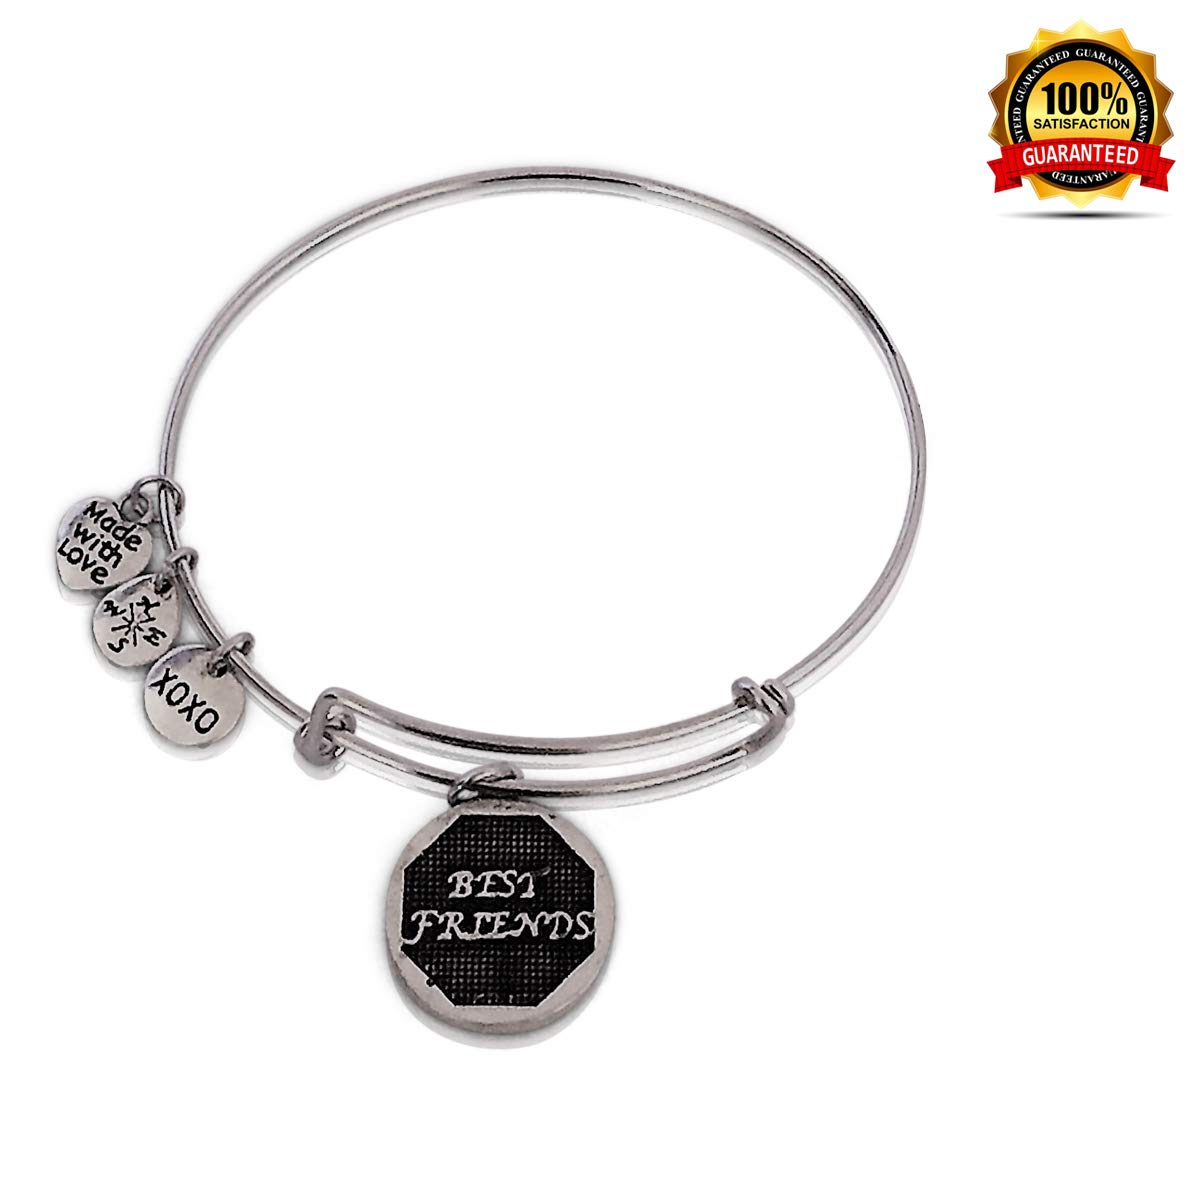 Supersonic Expandable Wire Bangle Bracelet 25 Best Friend